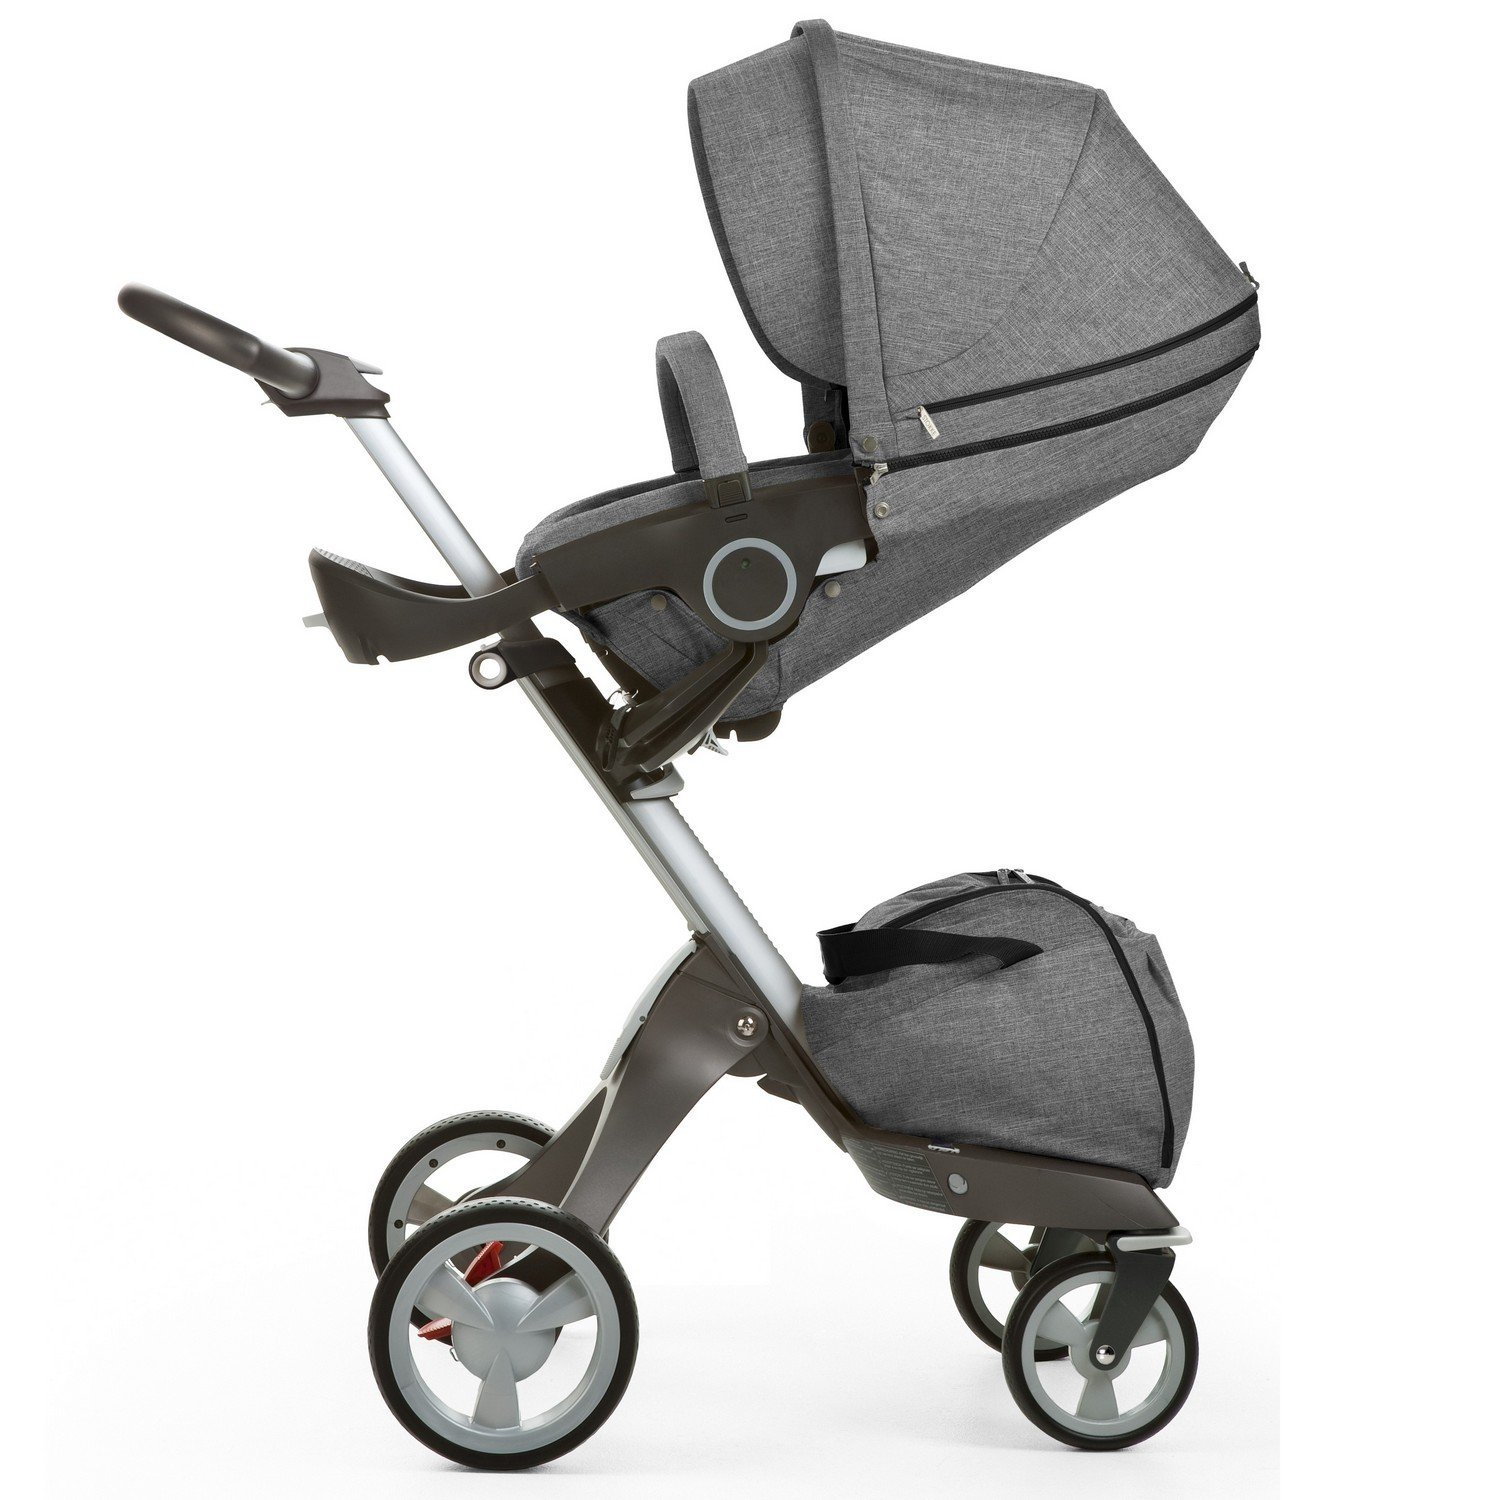 my epic guide to the stokke xplory stroller - stokkexplorystroller